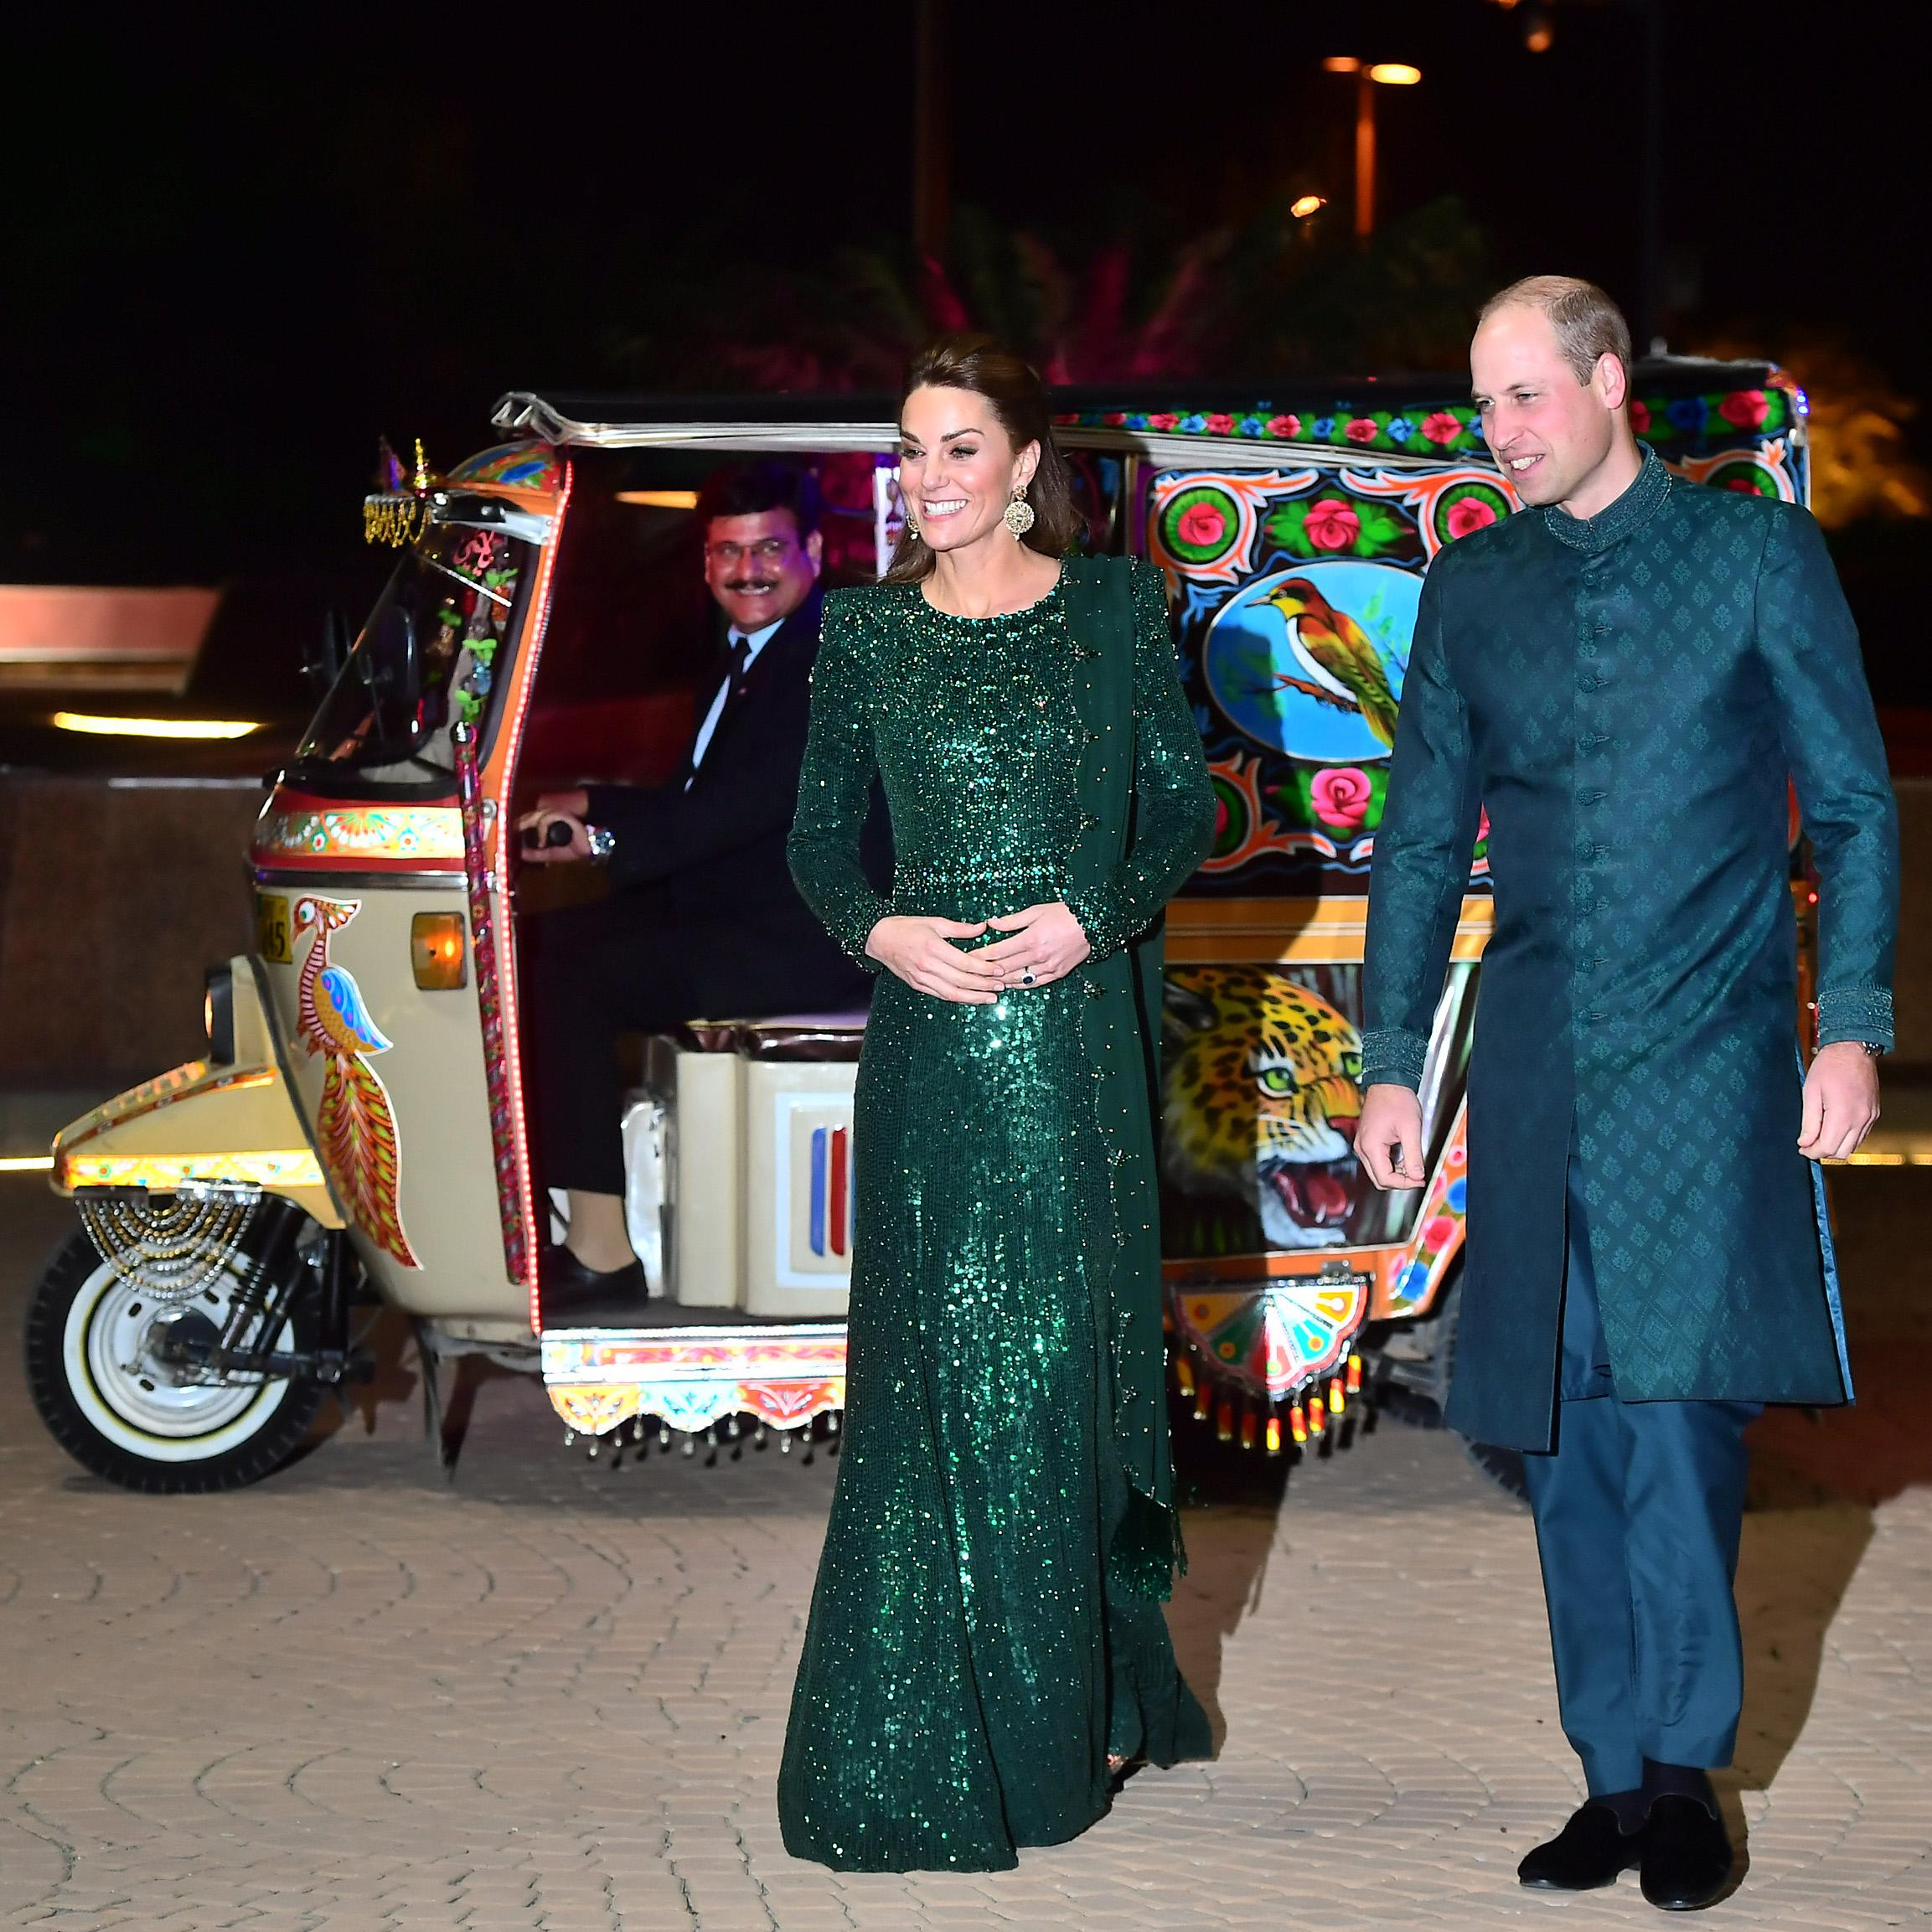 The Duke And Duchess Of Cambridge arrive in a rickshaw. [Photo: Getty]